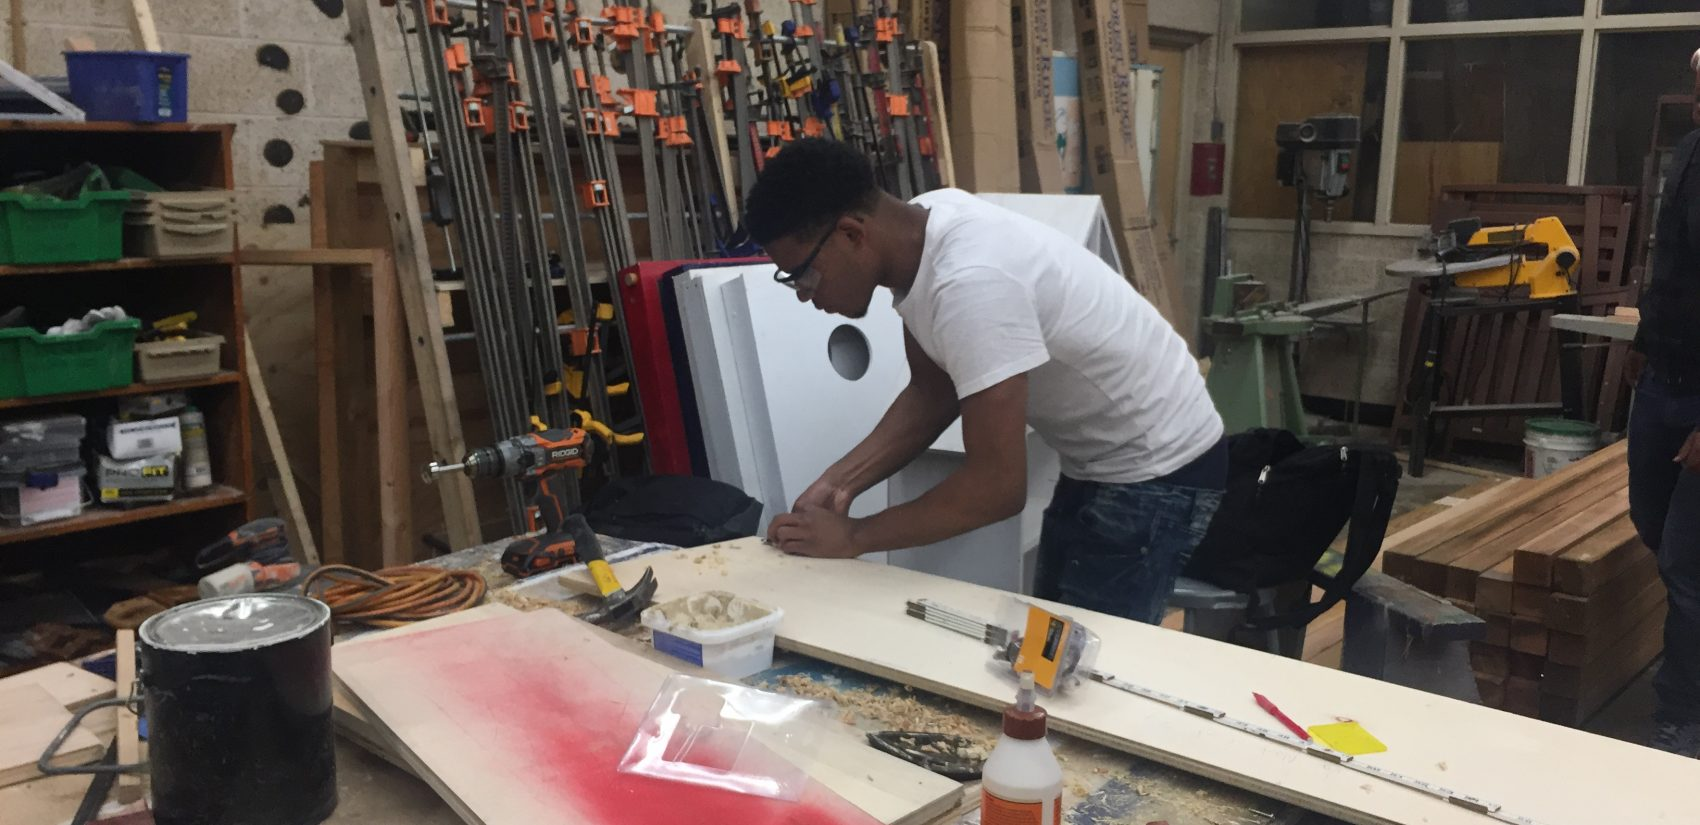 A student in Mac Emerson's construction tech class at William Penn works on a project. (Cris Barrish/WHYY)